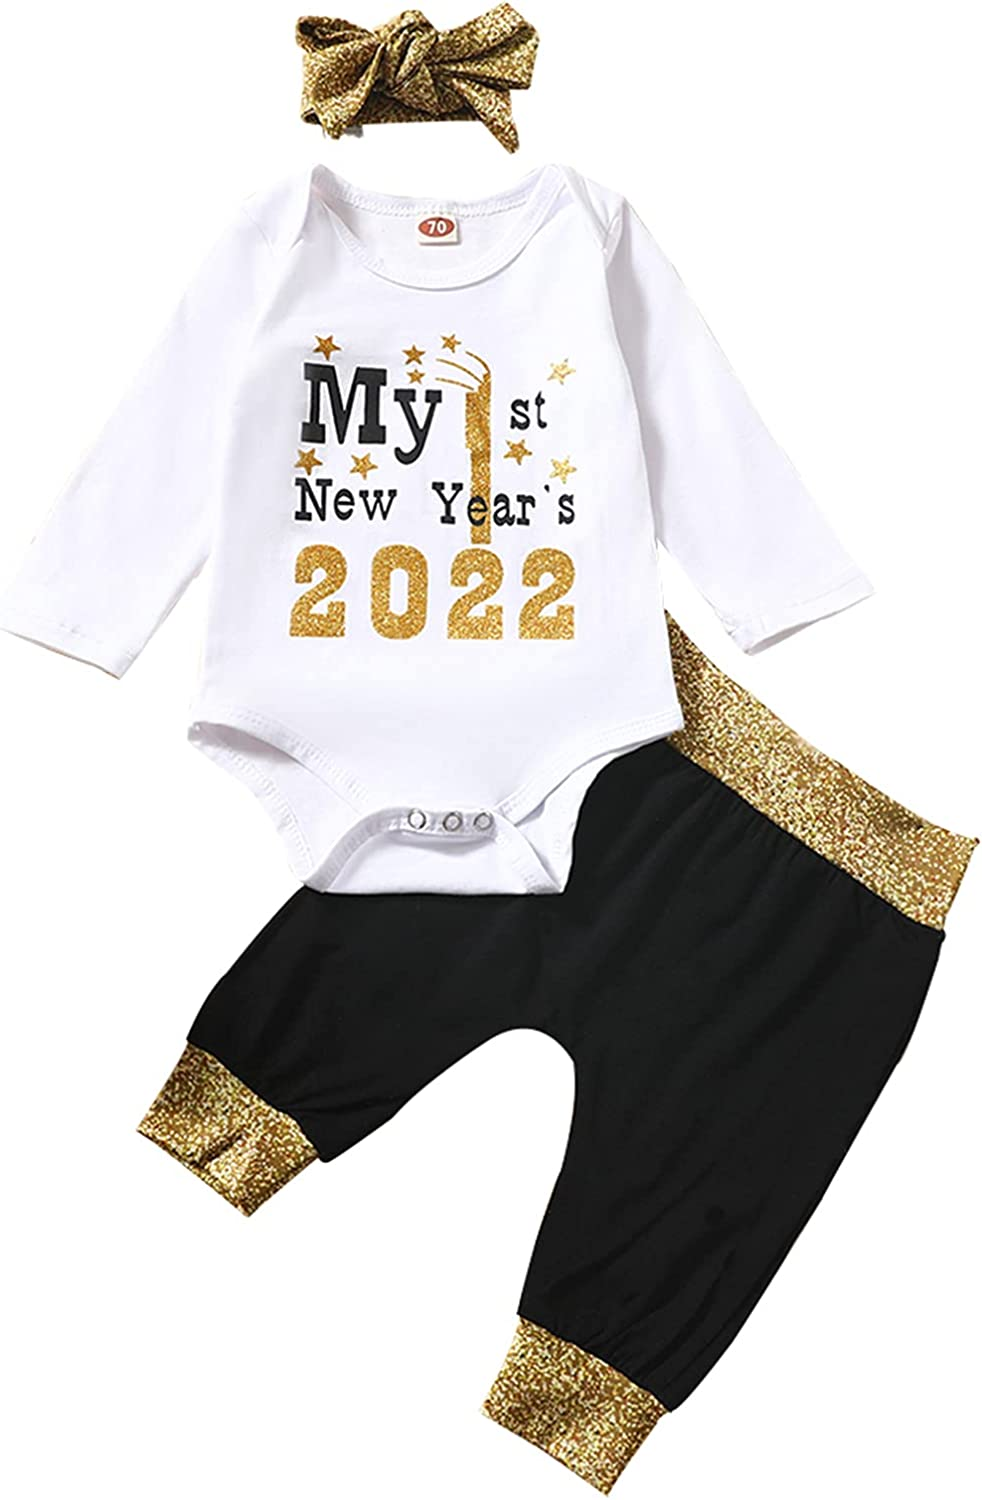 Baby Girls My First Popular overseas New Year New product!! Romper 2022 1st Outfit Pant Hea Top